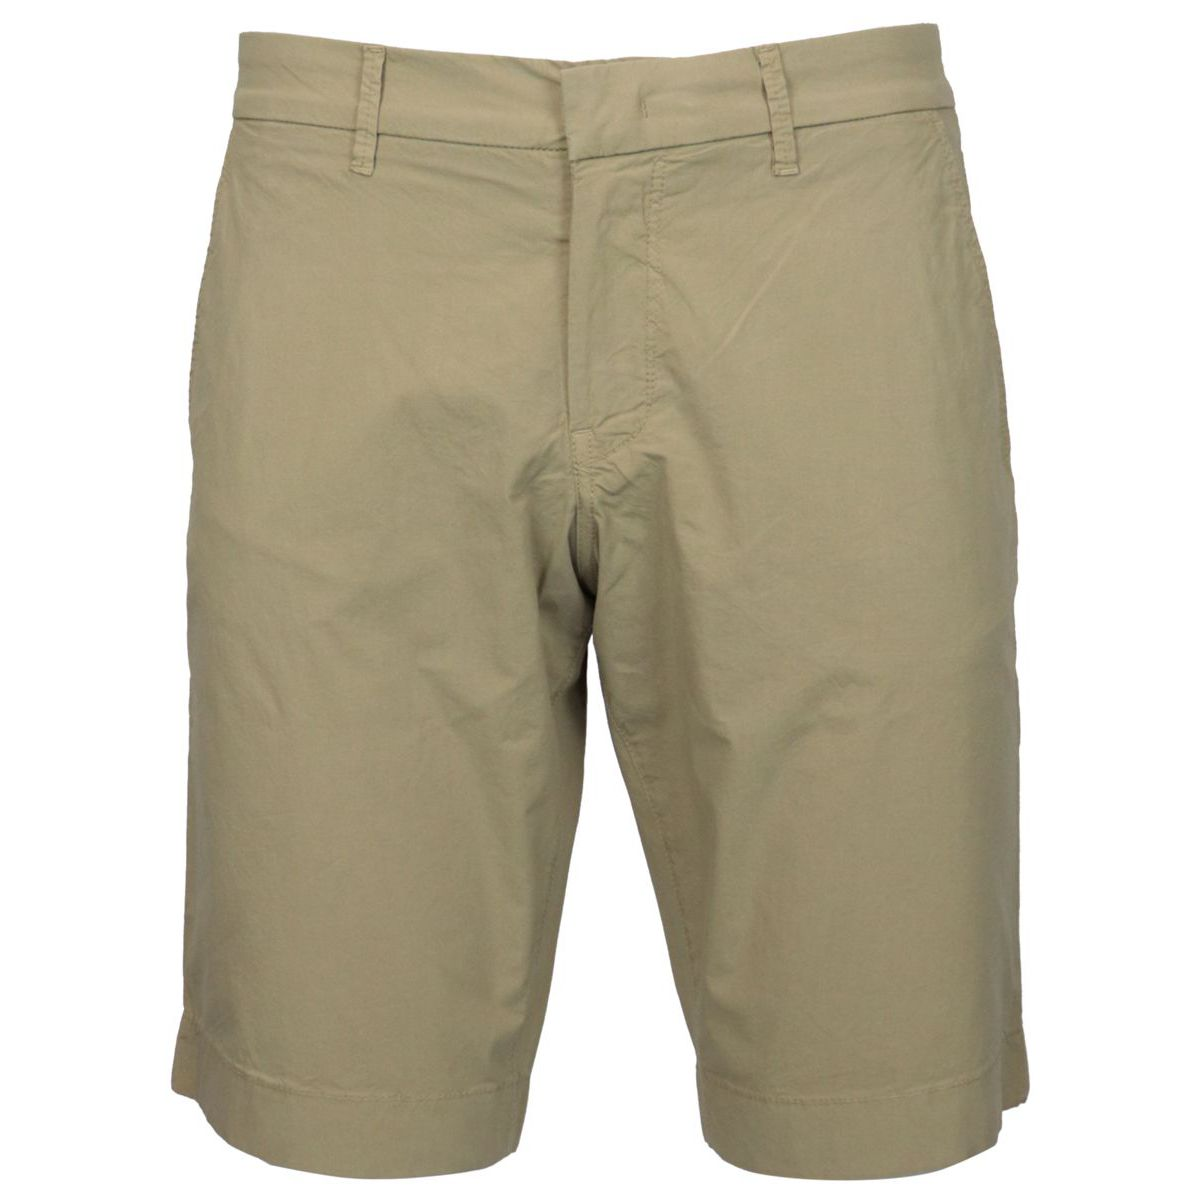 Garment-dyed cotton CHINO shorts Beige Fay